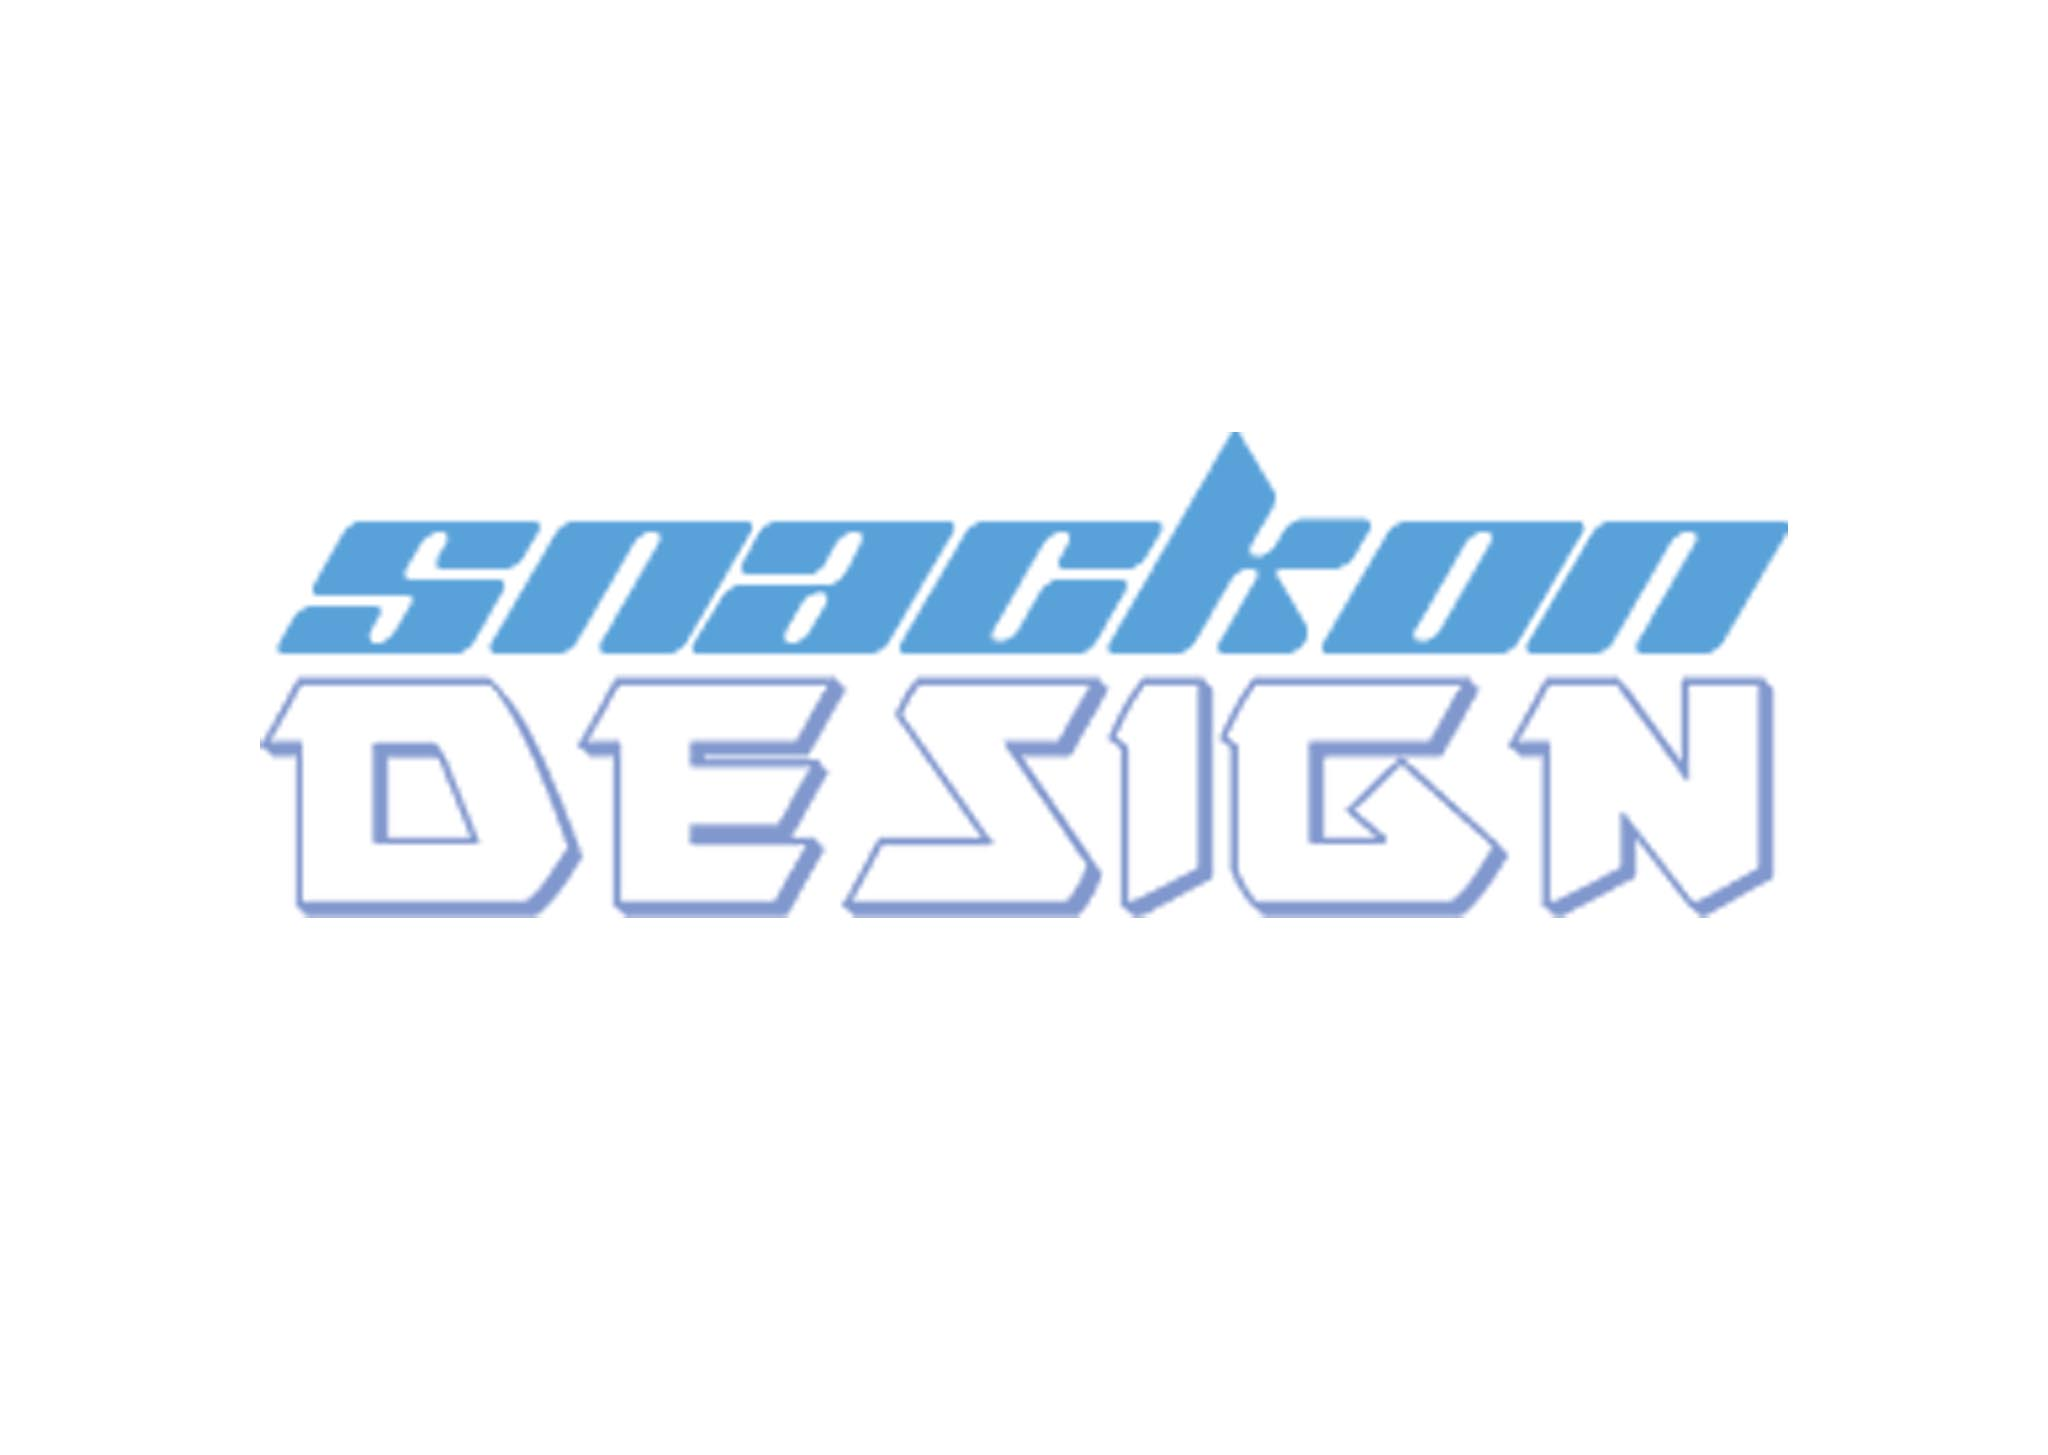 http://www.snackondesign.com/wp-content/uploads/2018/06/SnackON-Design.jpg